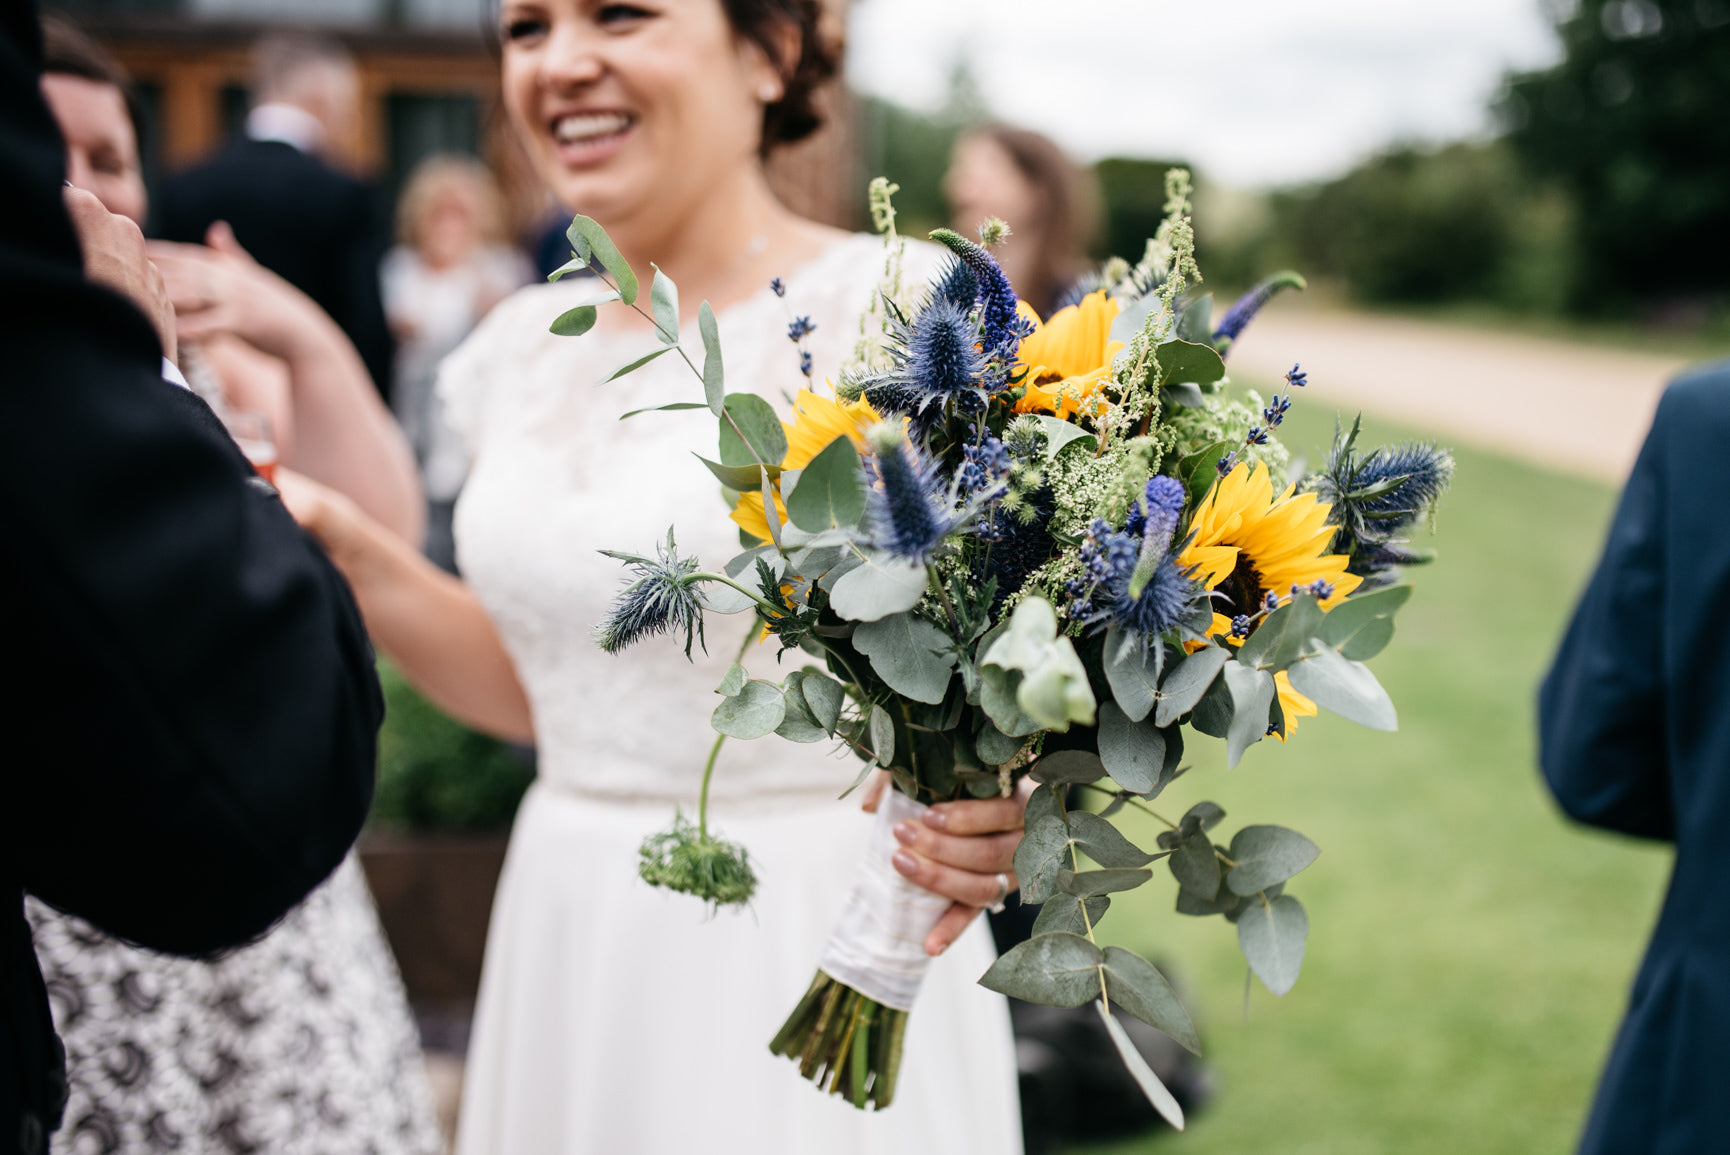 Bridal Bouquet with Sunflowers, Thistle and foliage